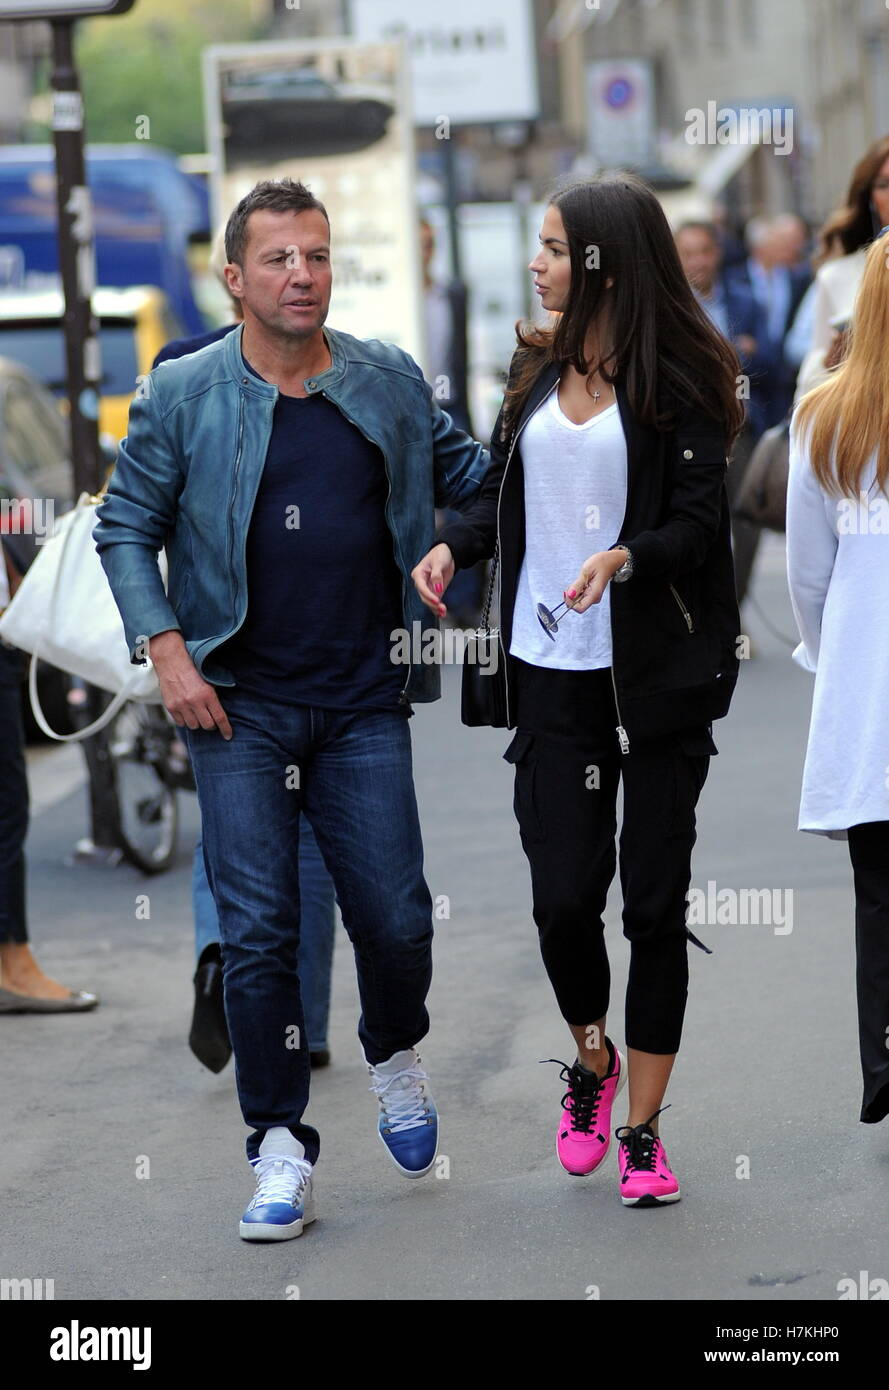 Lothar Matthaus and his wife Anastasia Klimko seen shopping and having lunch in Via Montenapoleone  Featuring: Lothar Matthaus, Anastasia Klimko, Lothar Matthäus Where: Milan, Italy When: 05 Oct 2016 Credit: IPA/WENN.com  **Only available for publication Stock Photo